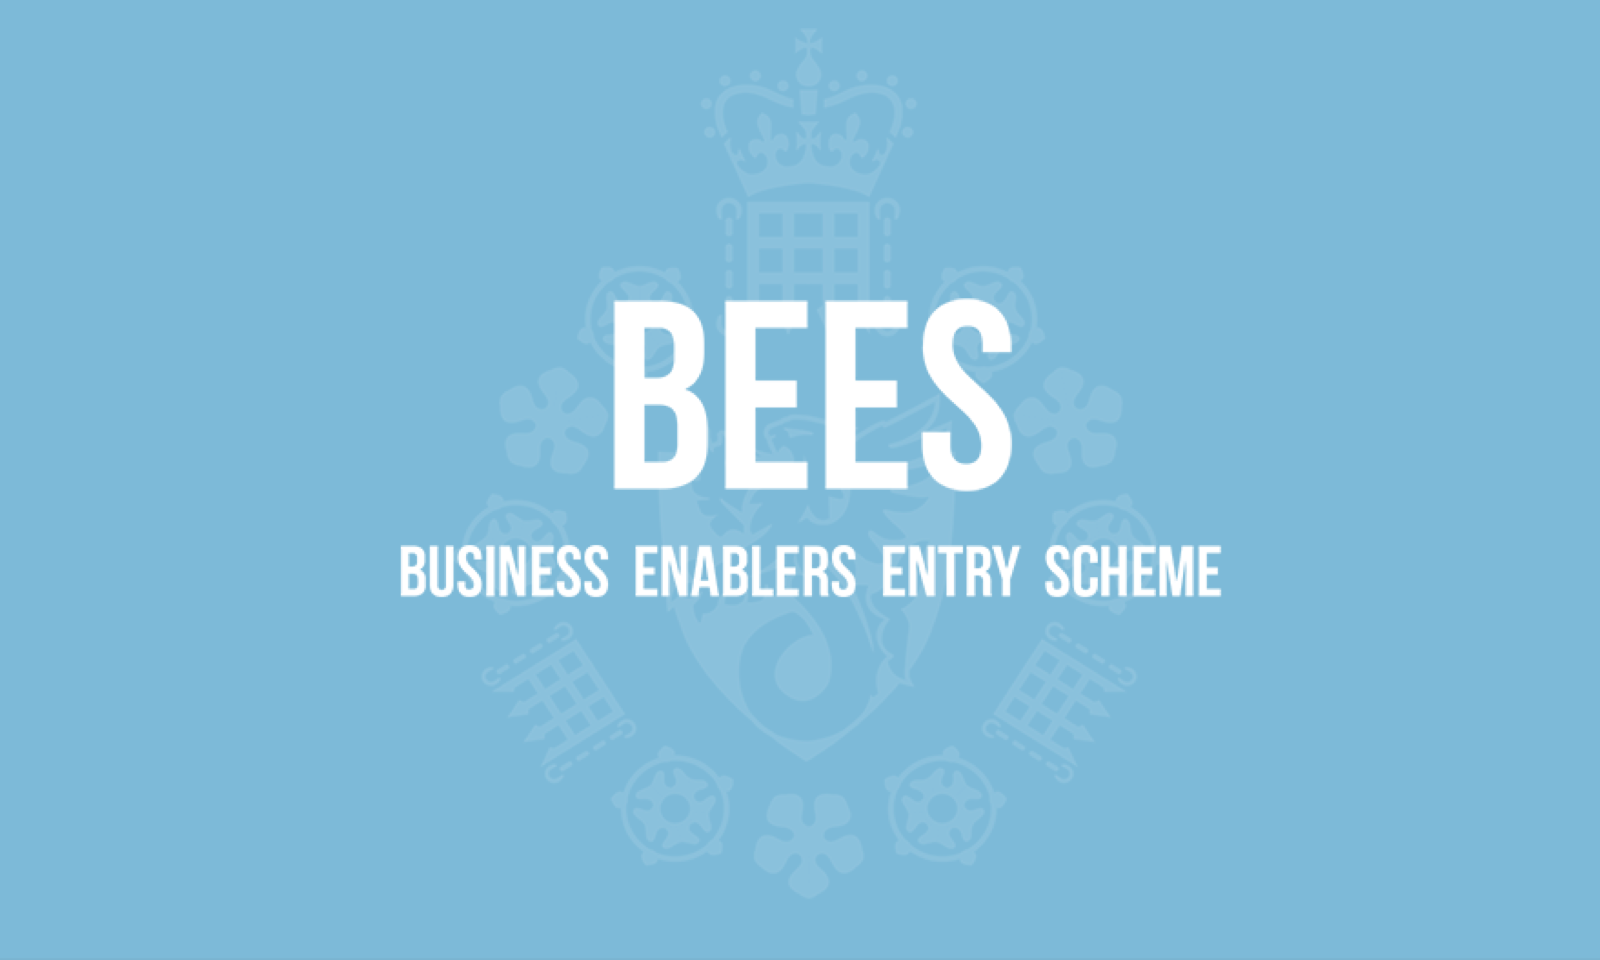 BEES- Business Enablers Entry Scheme